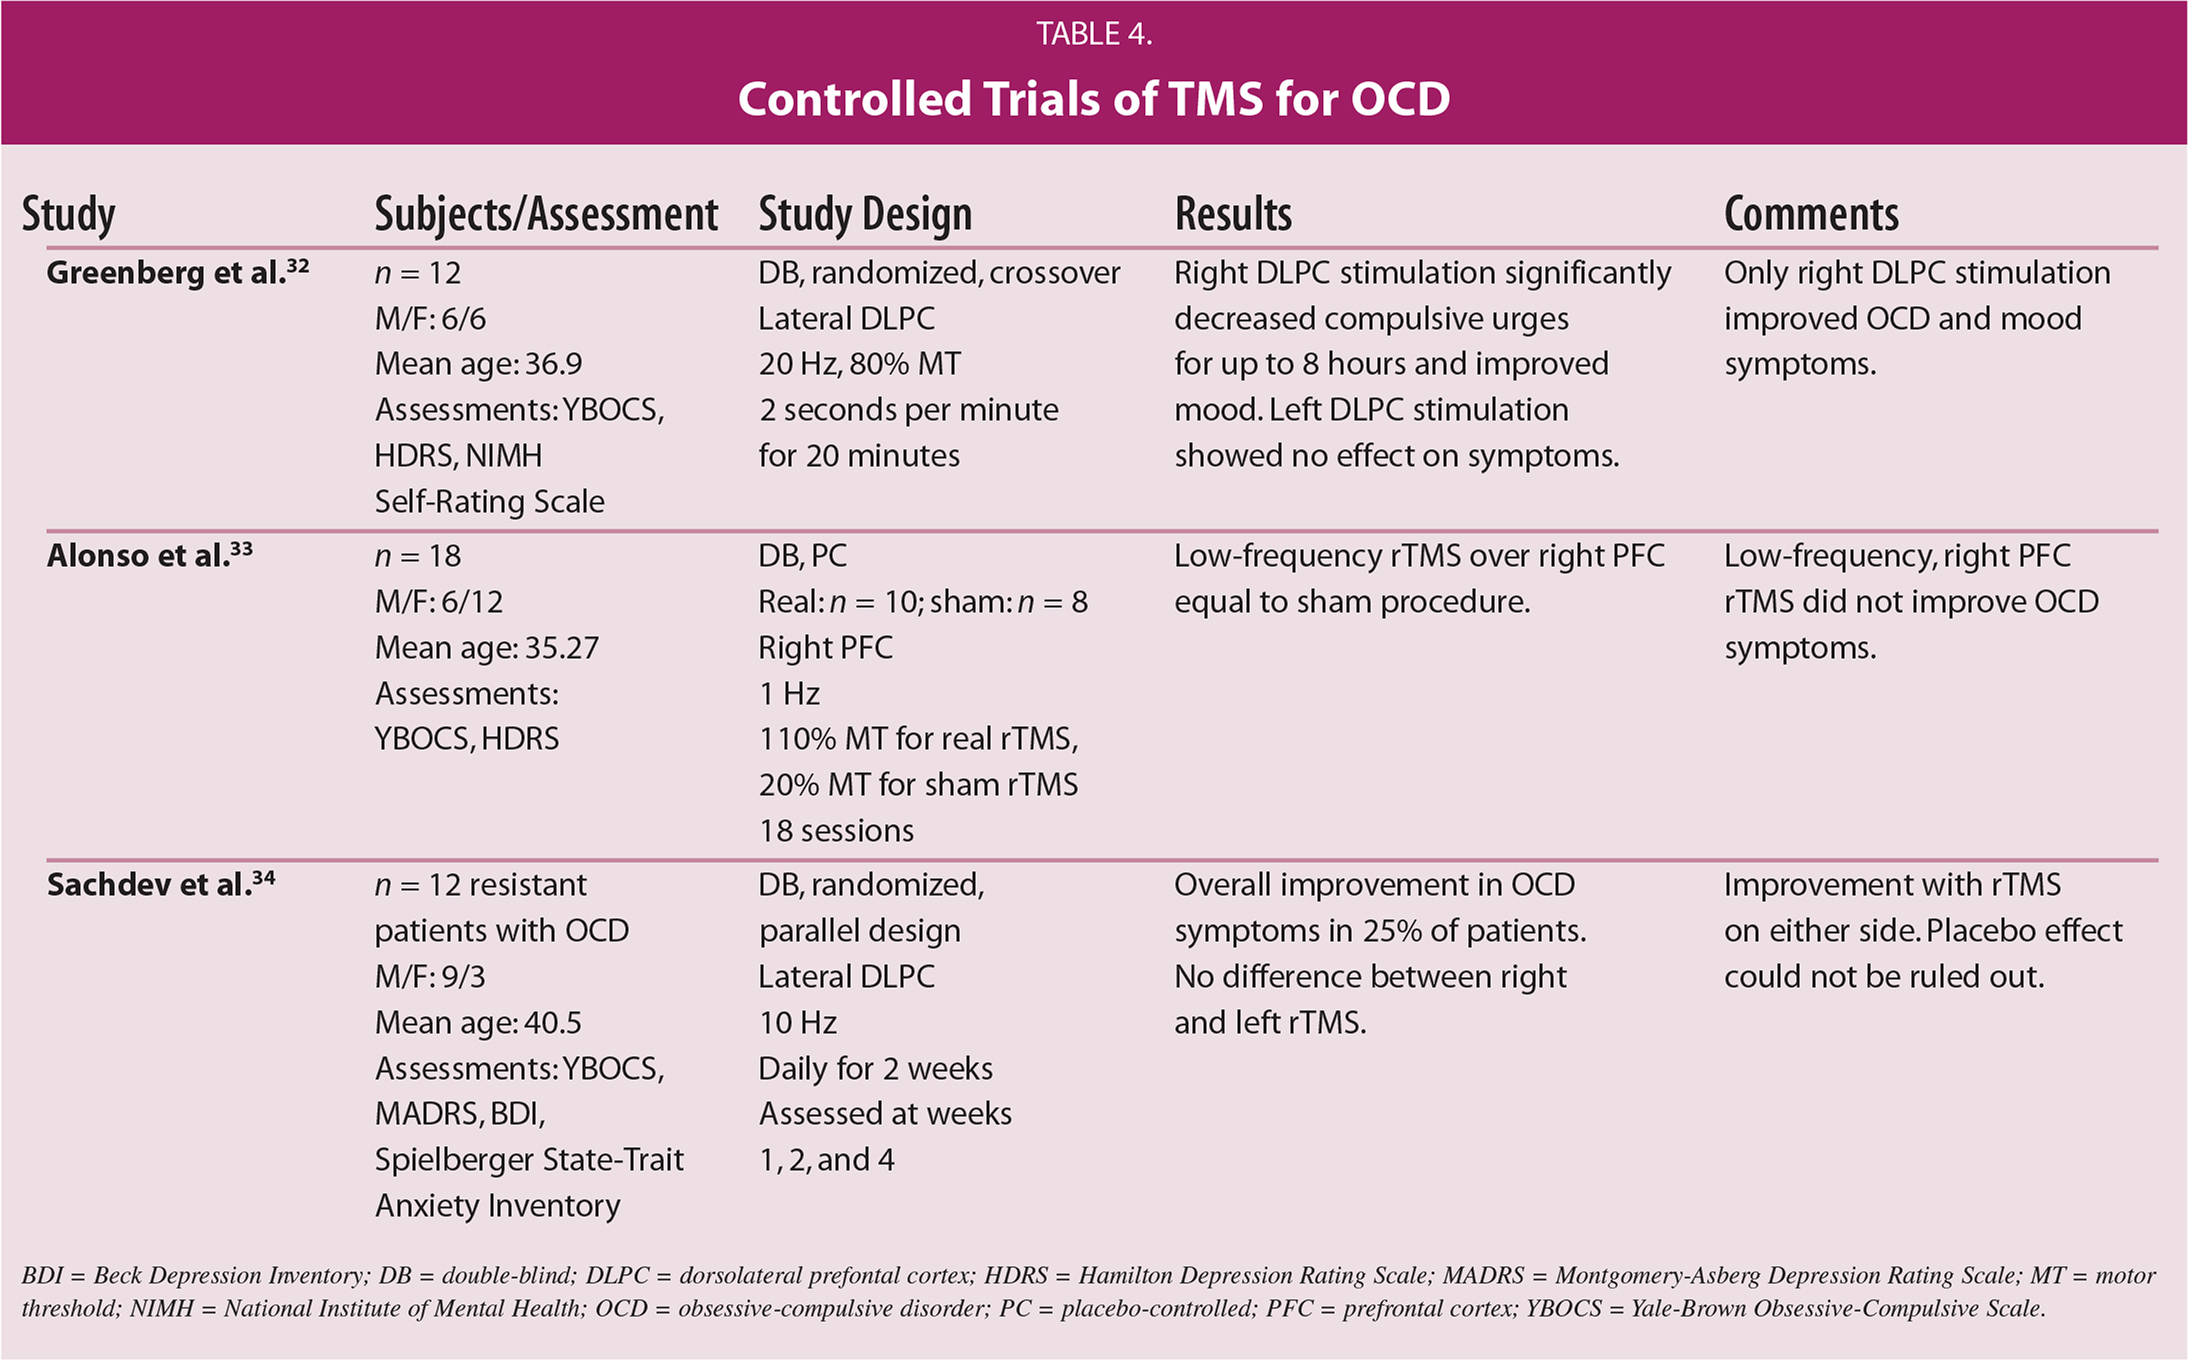 Controlled Trials of TMS for OCD